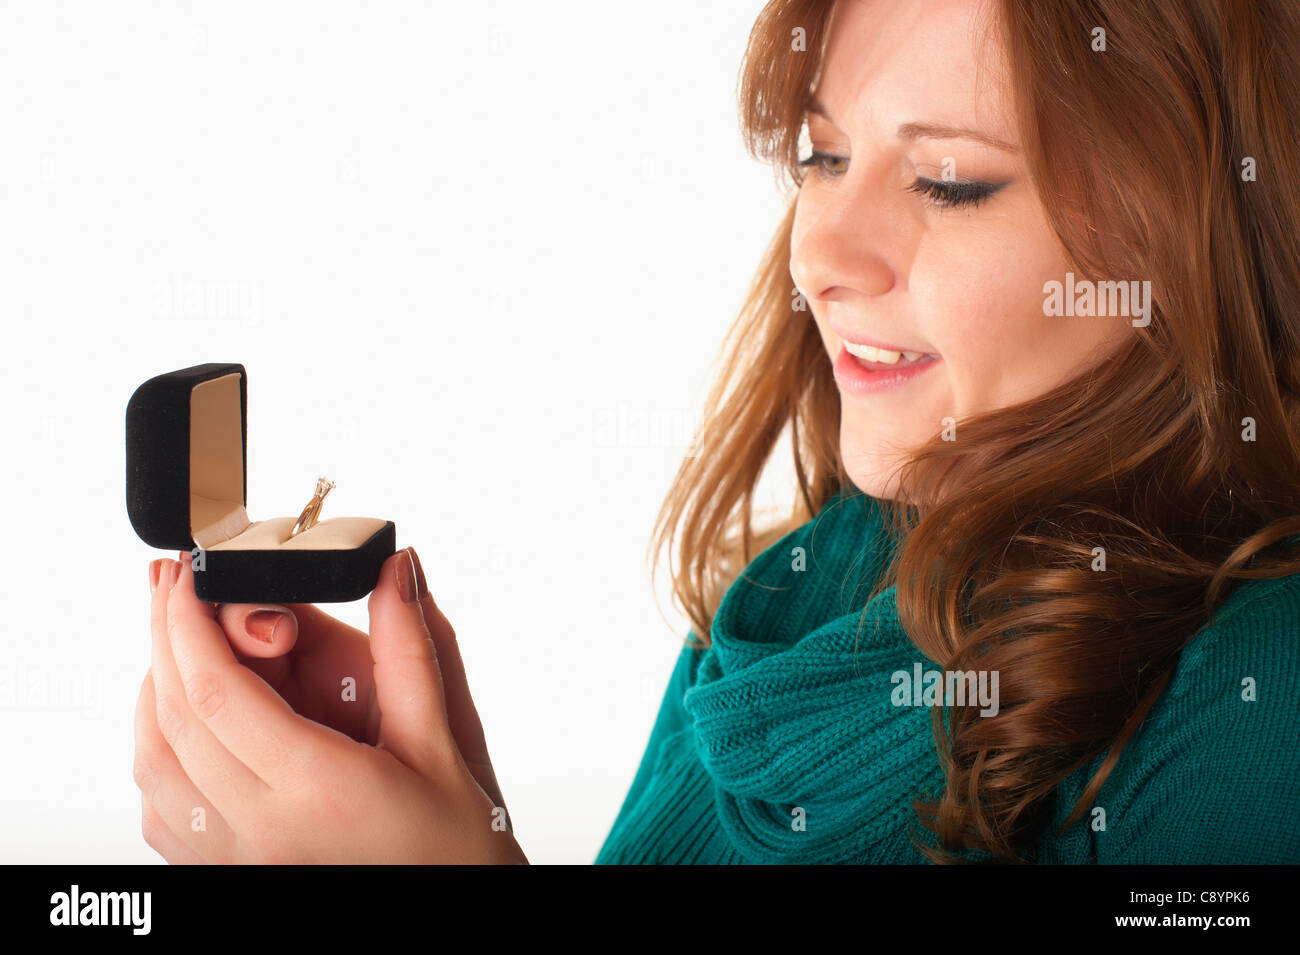 Young woman looking at diamond ring in jewelry gift box - Stock Image